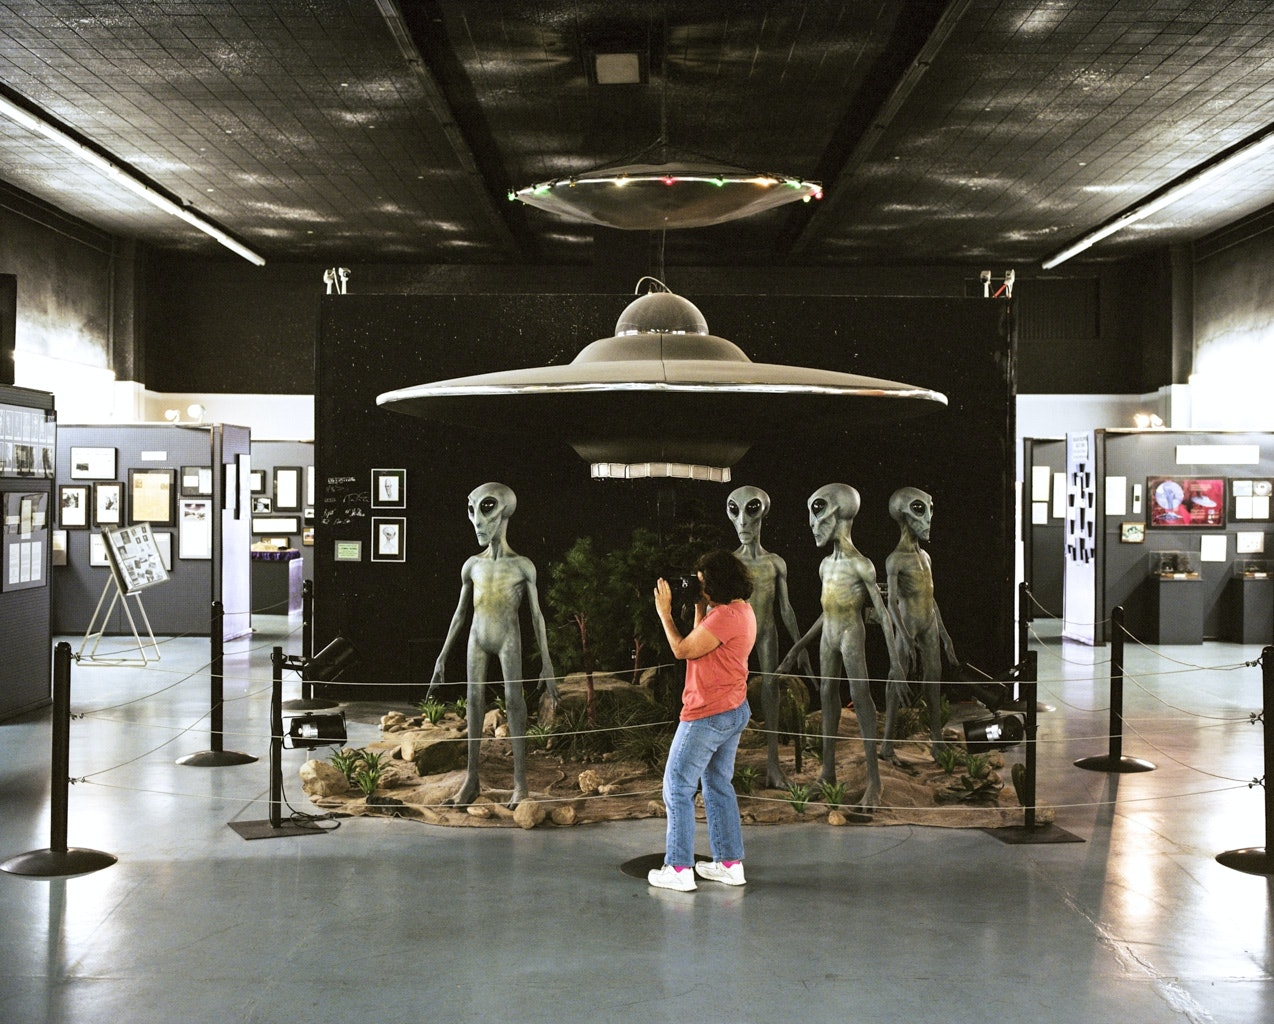 The International UFO Museum in Roswell, New Mexico, focuses largely on the supposed UFO crash that took place in the town in 1947.